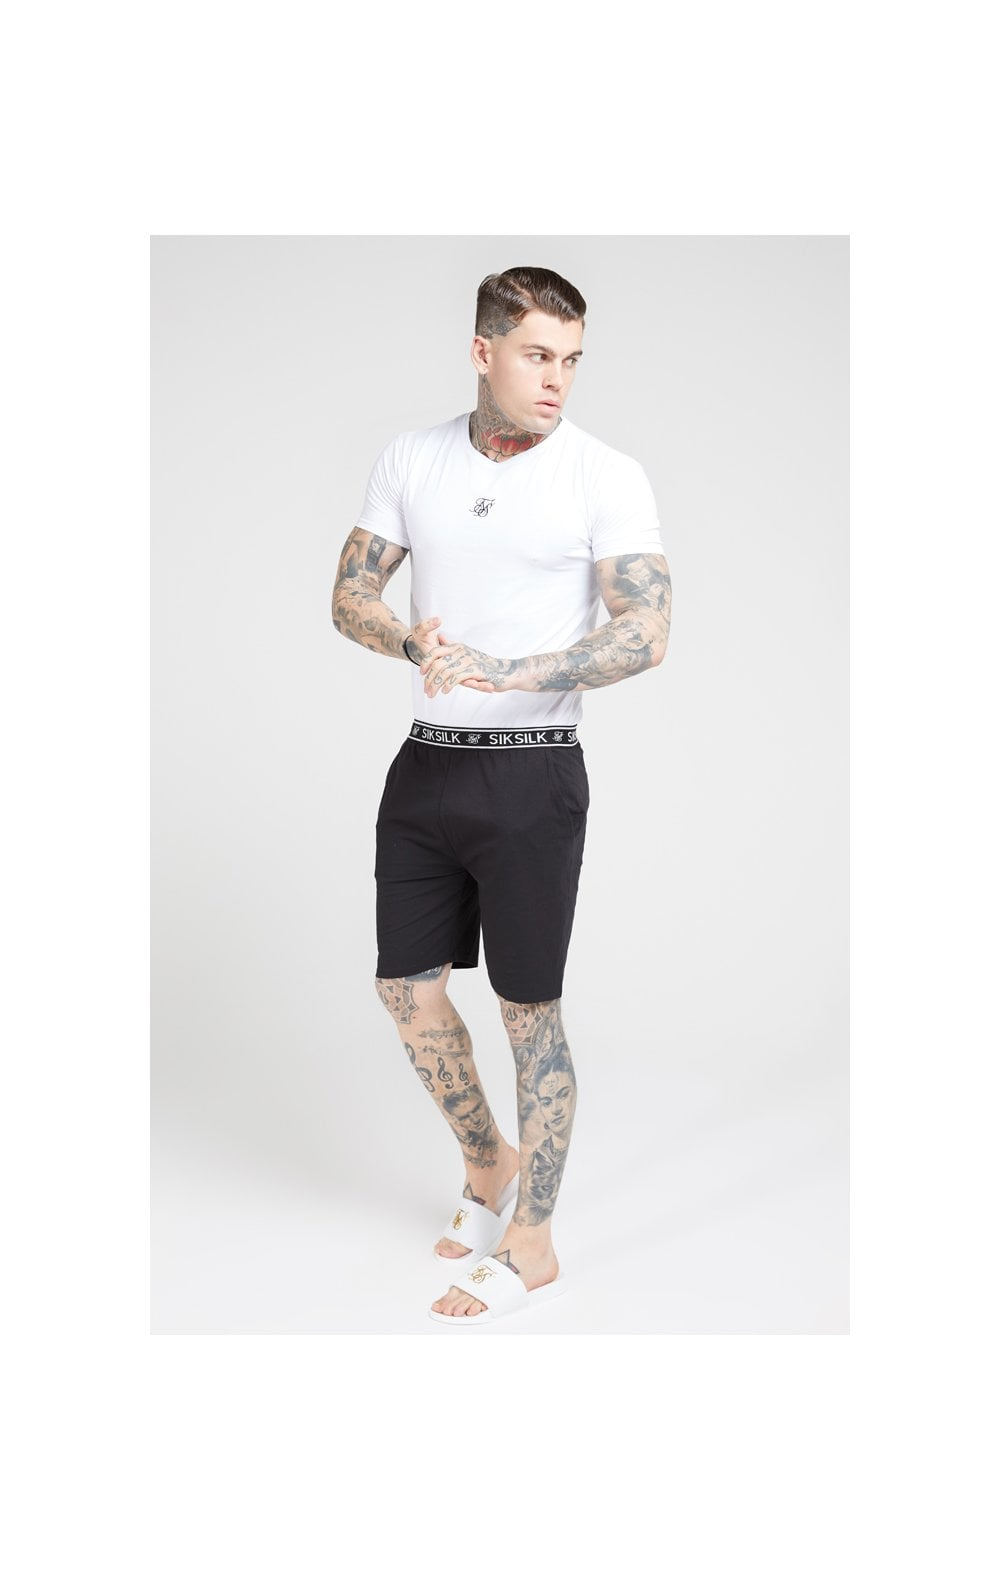 SikSilk Lounge Tee - White & Navy (2 Pack) - 1 White Tee & 1 Navy Tee (4)